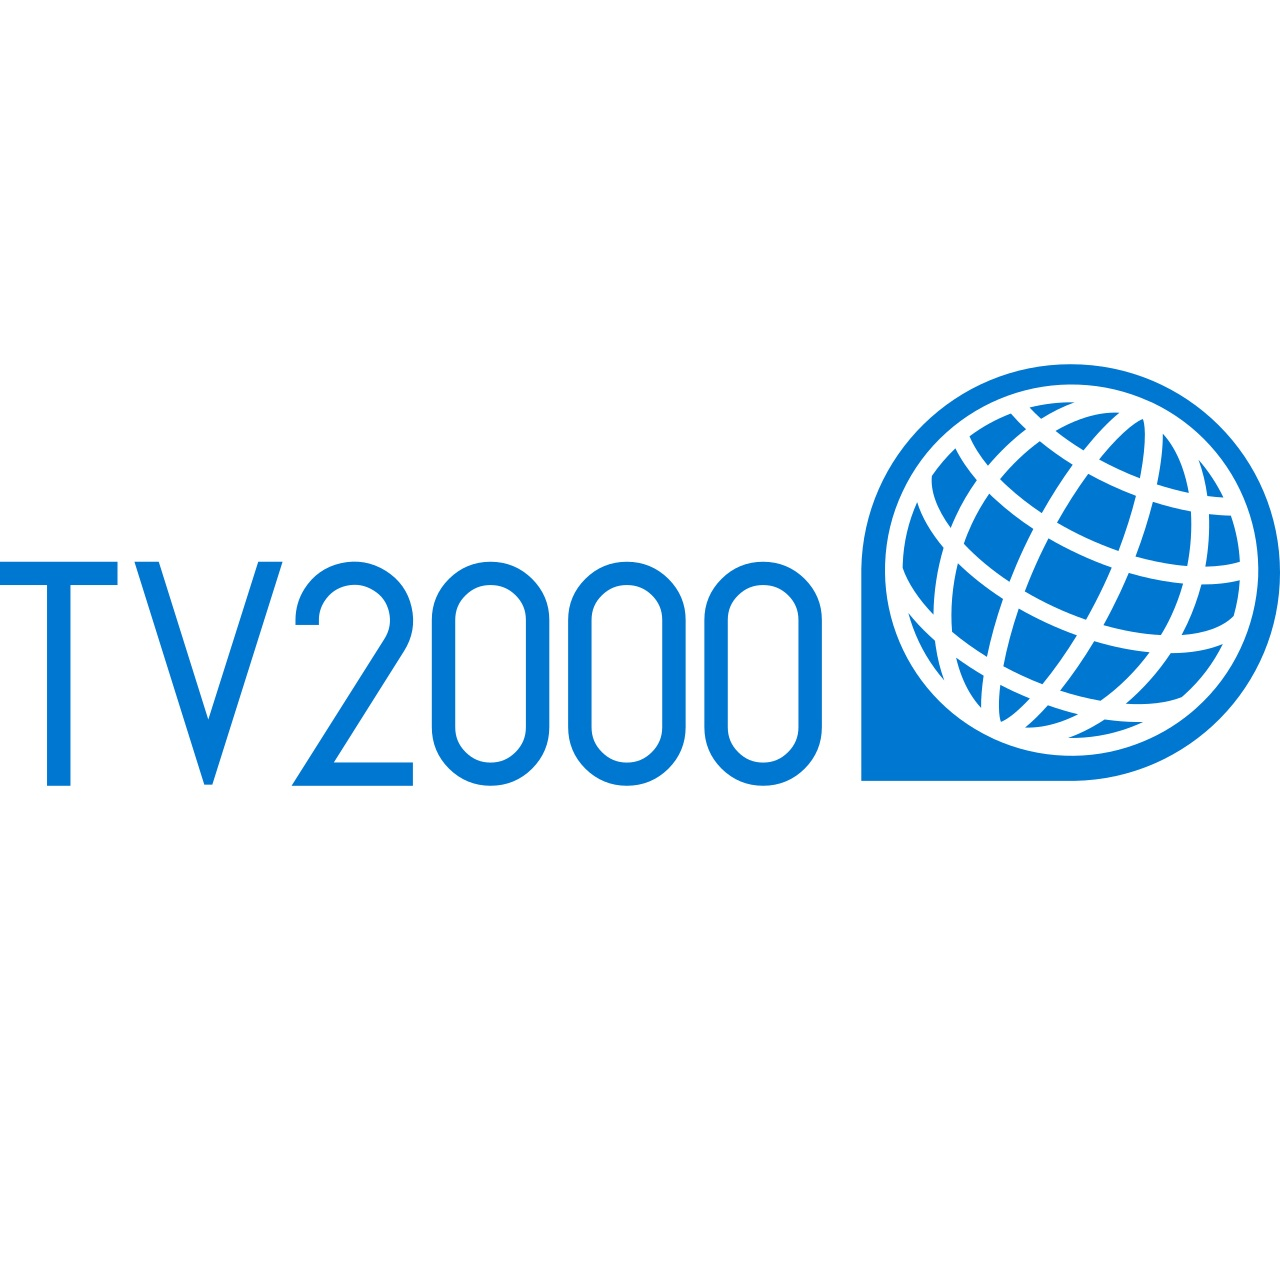 tv2000 valeria cagnina francesco baldassarre ofpassion